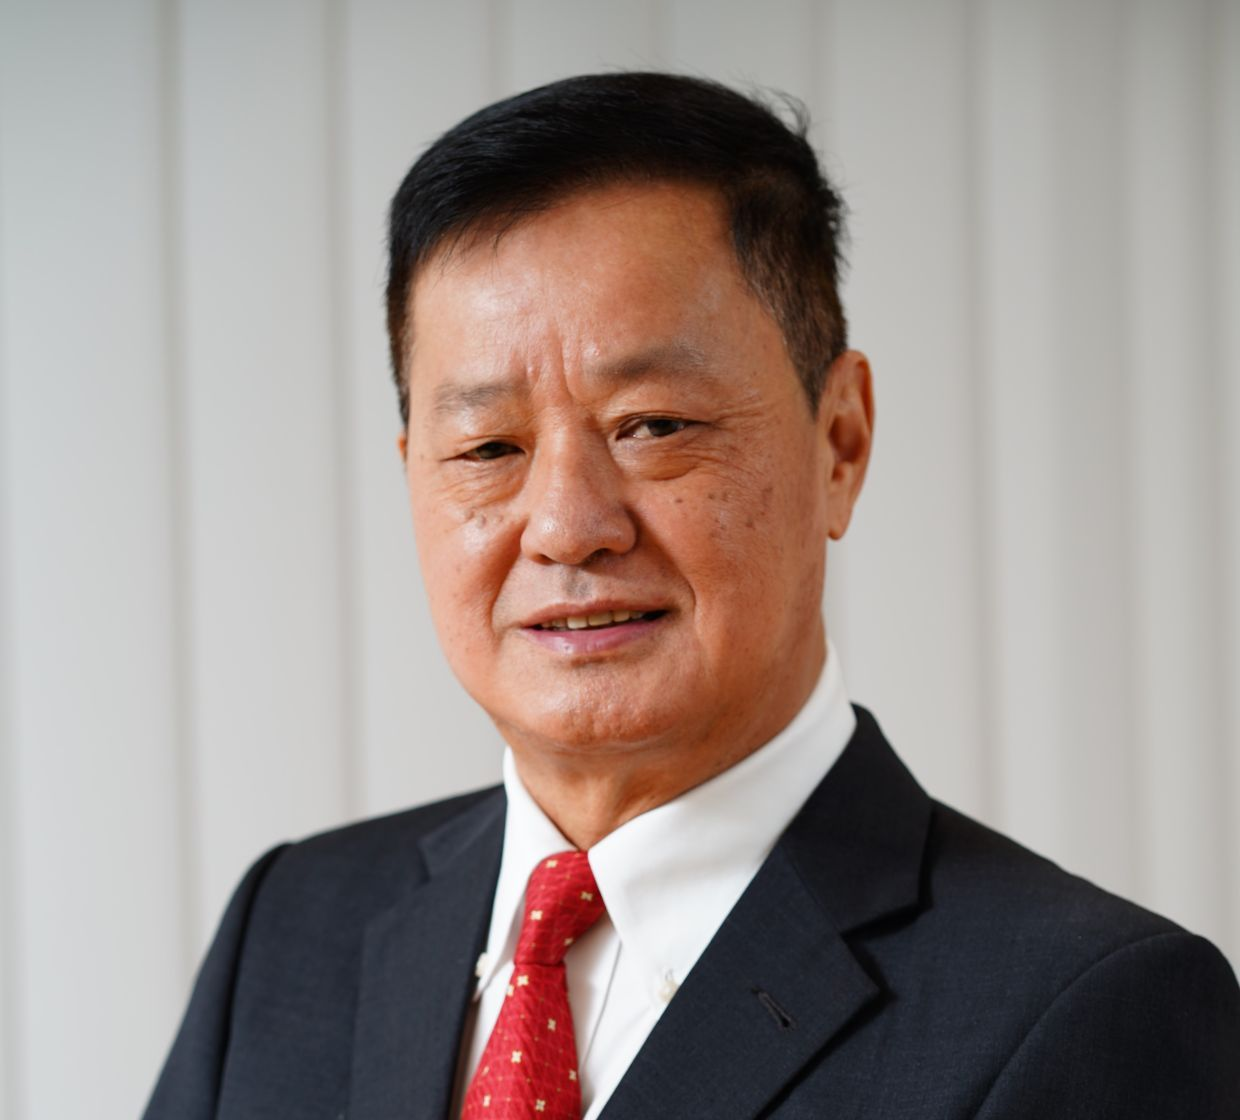 Managing director Datuk Toh Yew Peng says the iron and steel sector are still not in full operation due to lockdown measures imposed thus affecting the demand and supply of steel products.